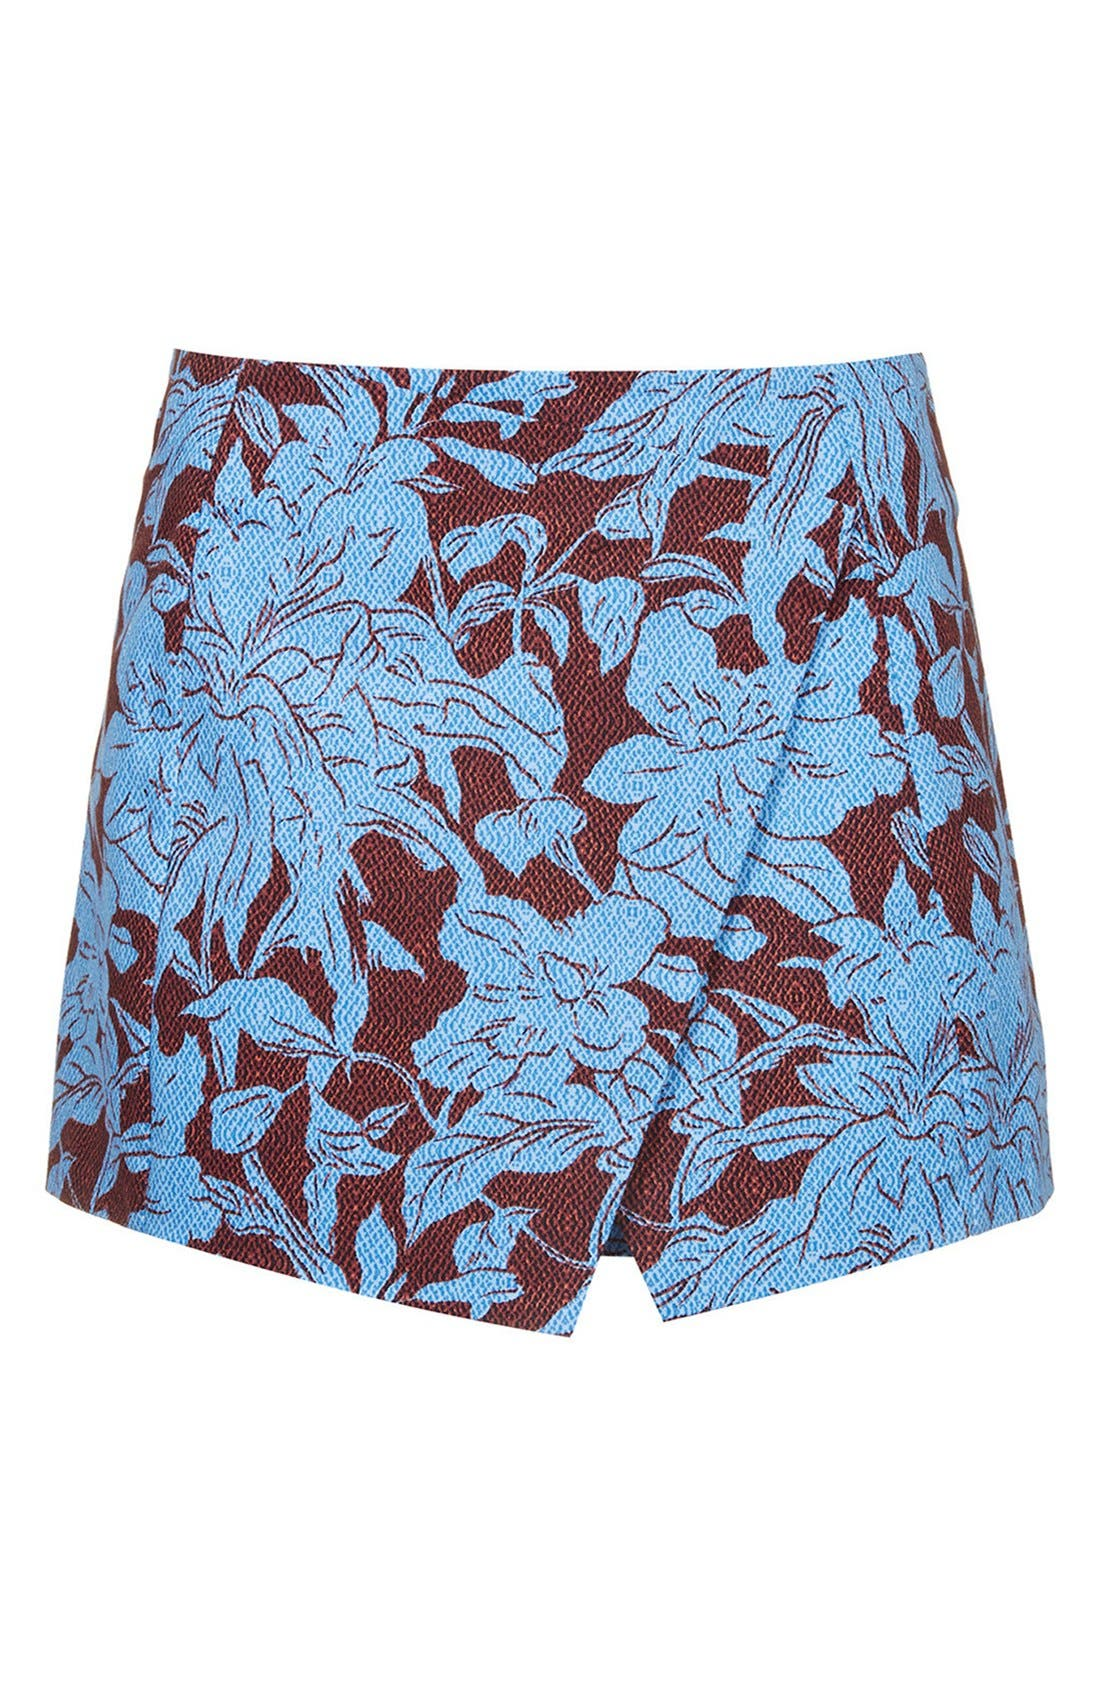 Alternate Image 3  - Topshop 'Cape Flower' Textured Wrap Skort